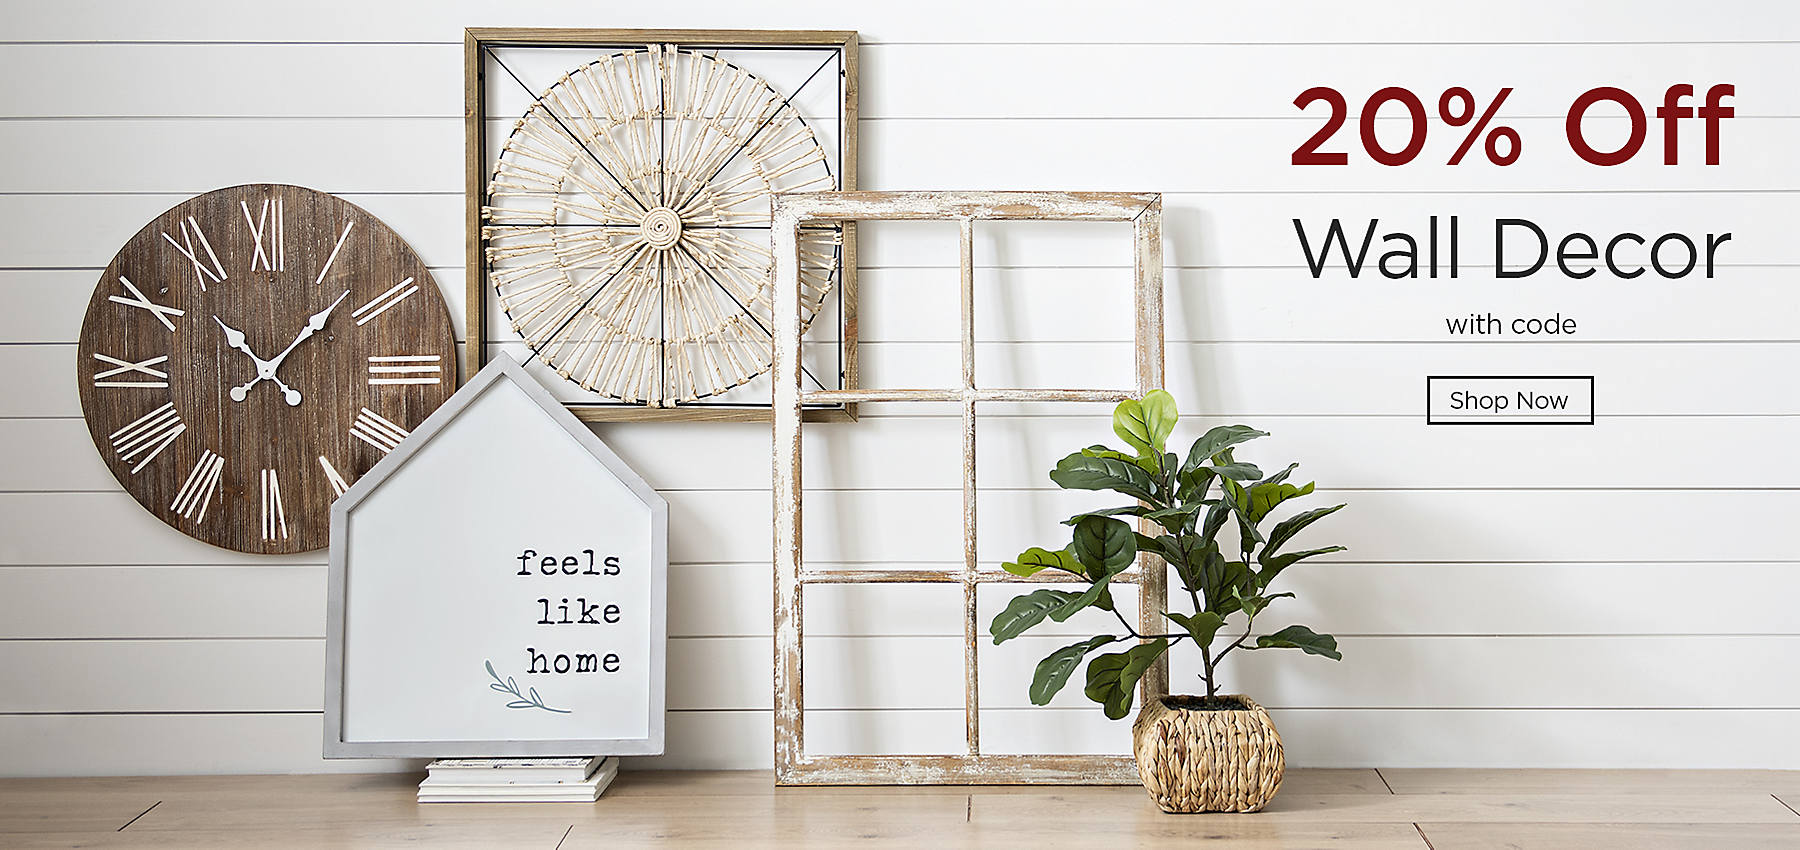 20% Off Wall Decor with code Shop Now